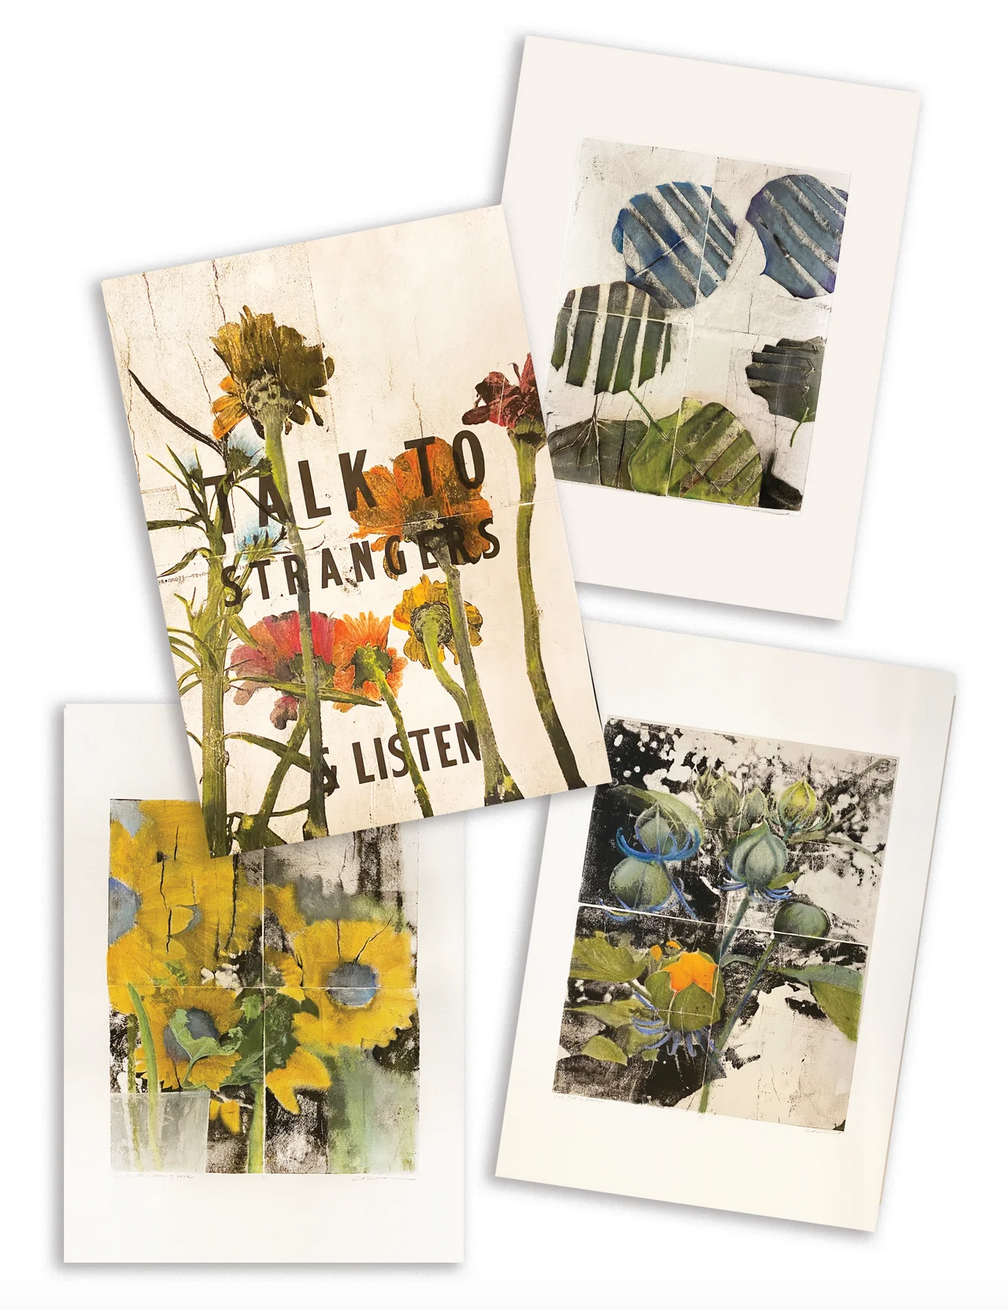 Solid Print art postcards for sale